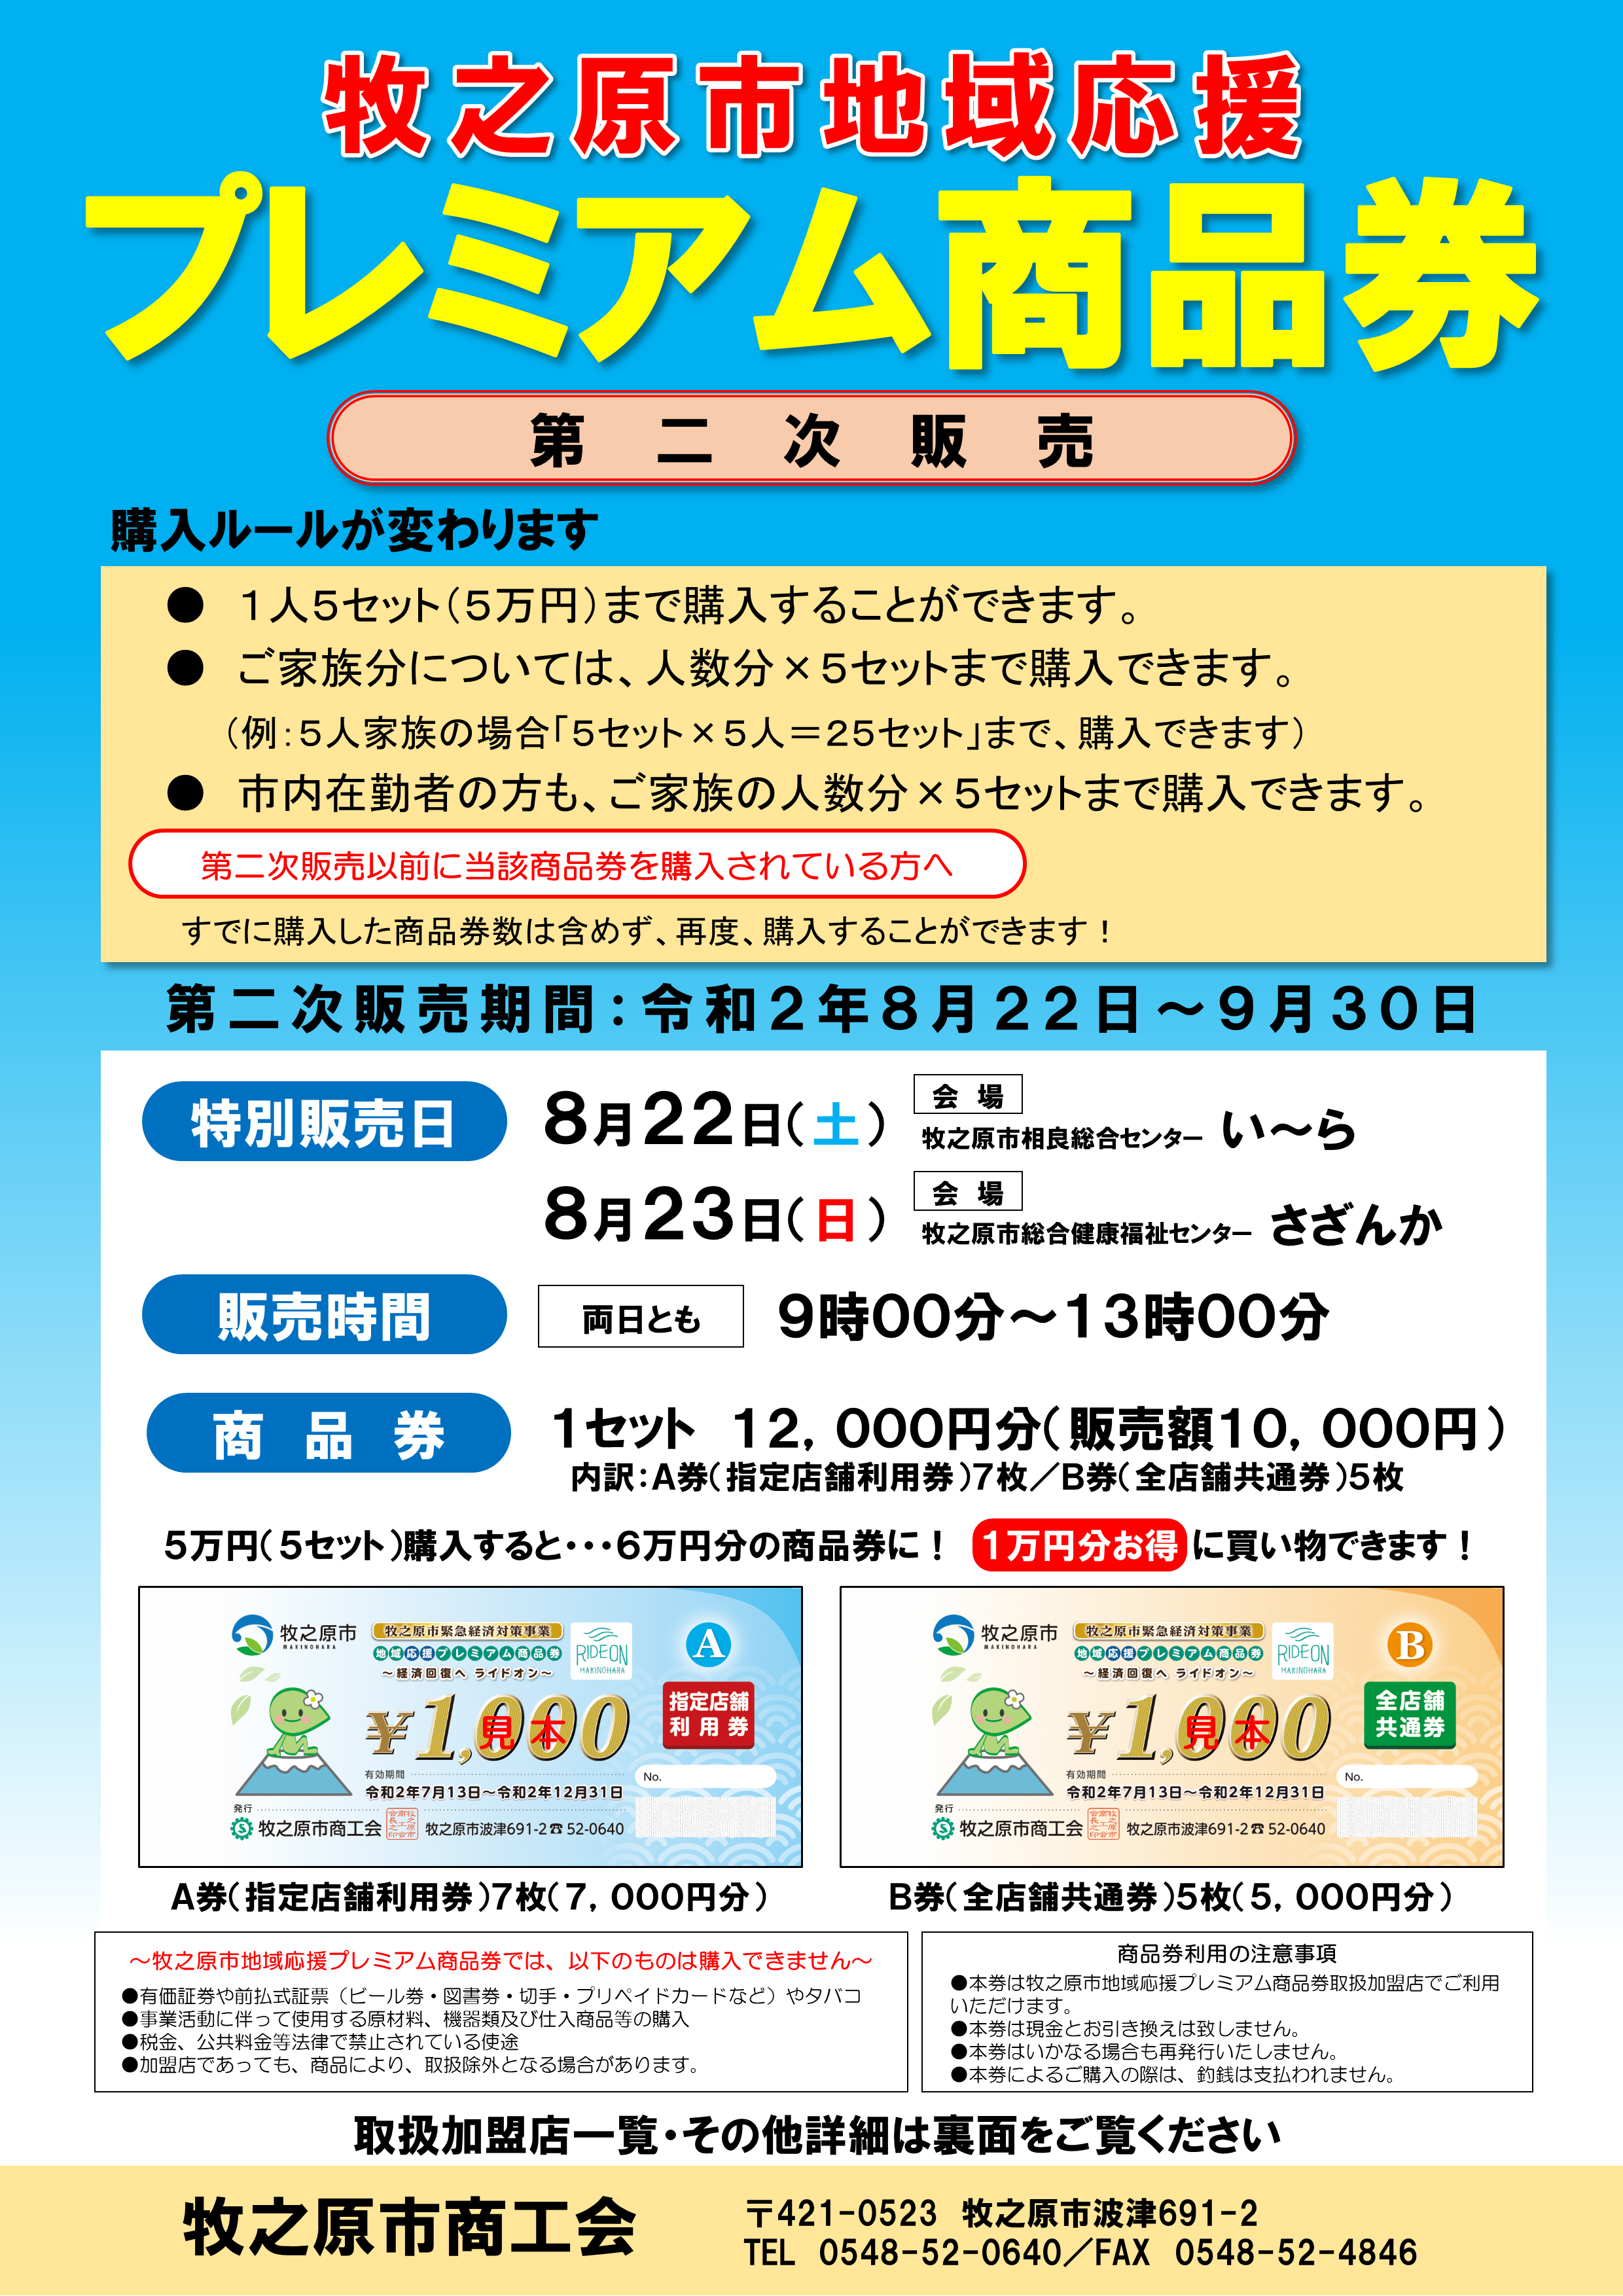 http://blog.makinohara-s.com/8.22%E3%83%81%E3%83%A9%E3%82%B7%E3%82%AA%E3%83%A2%E3%83%86.png